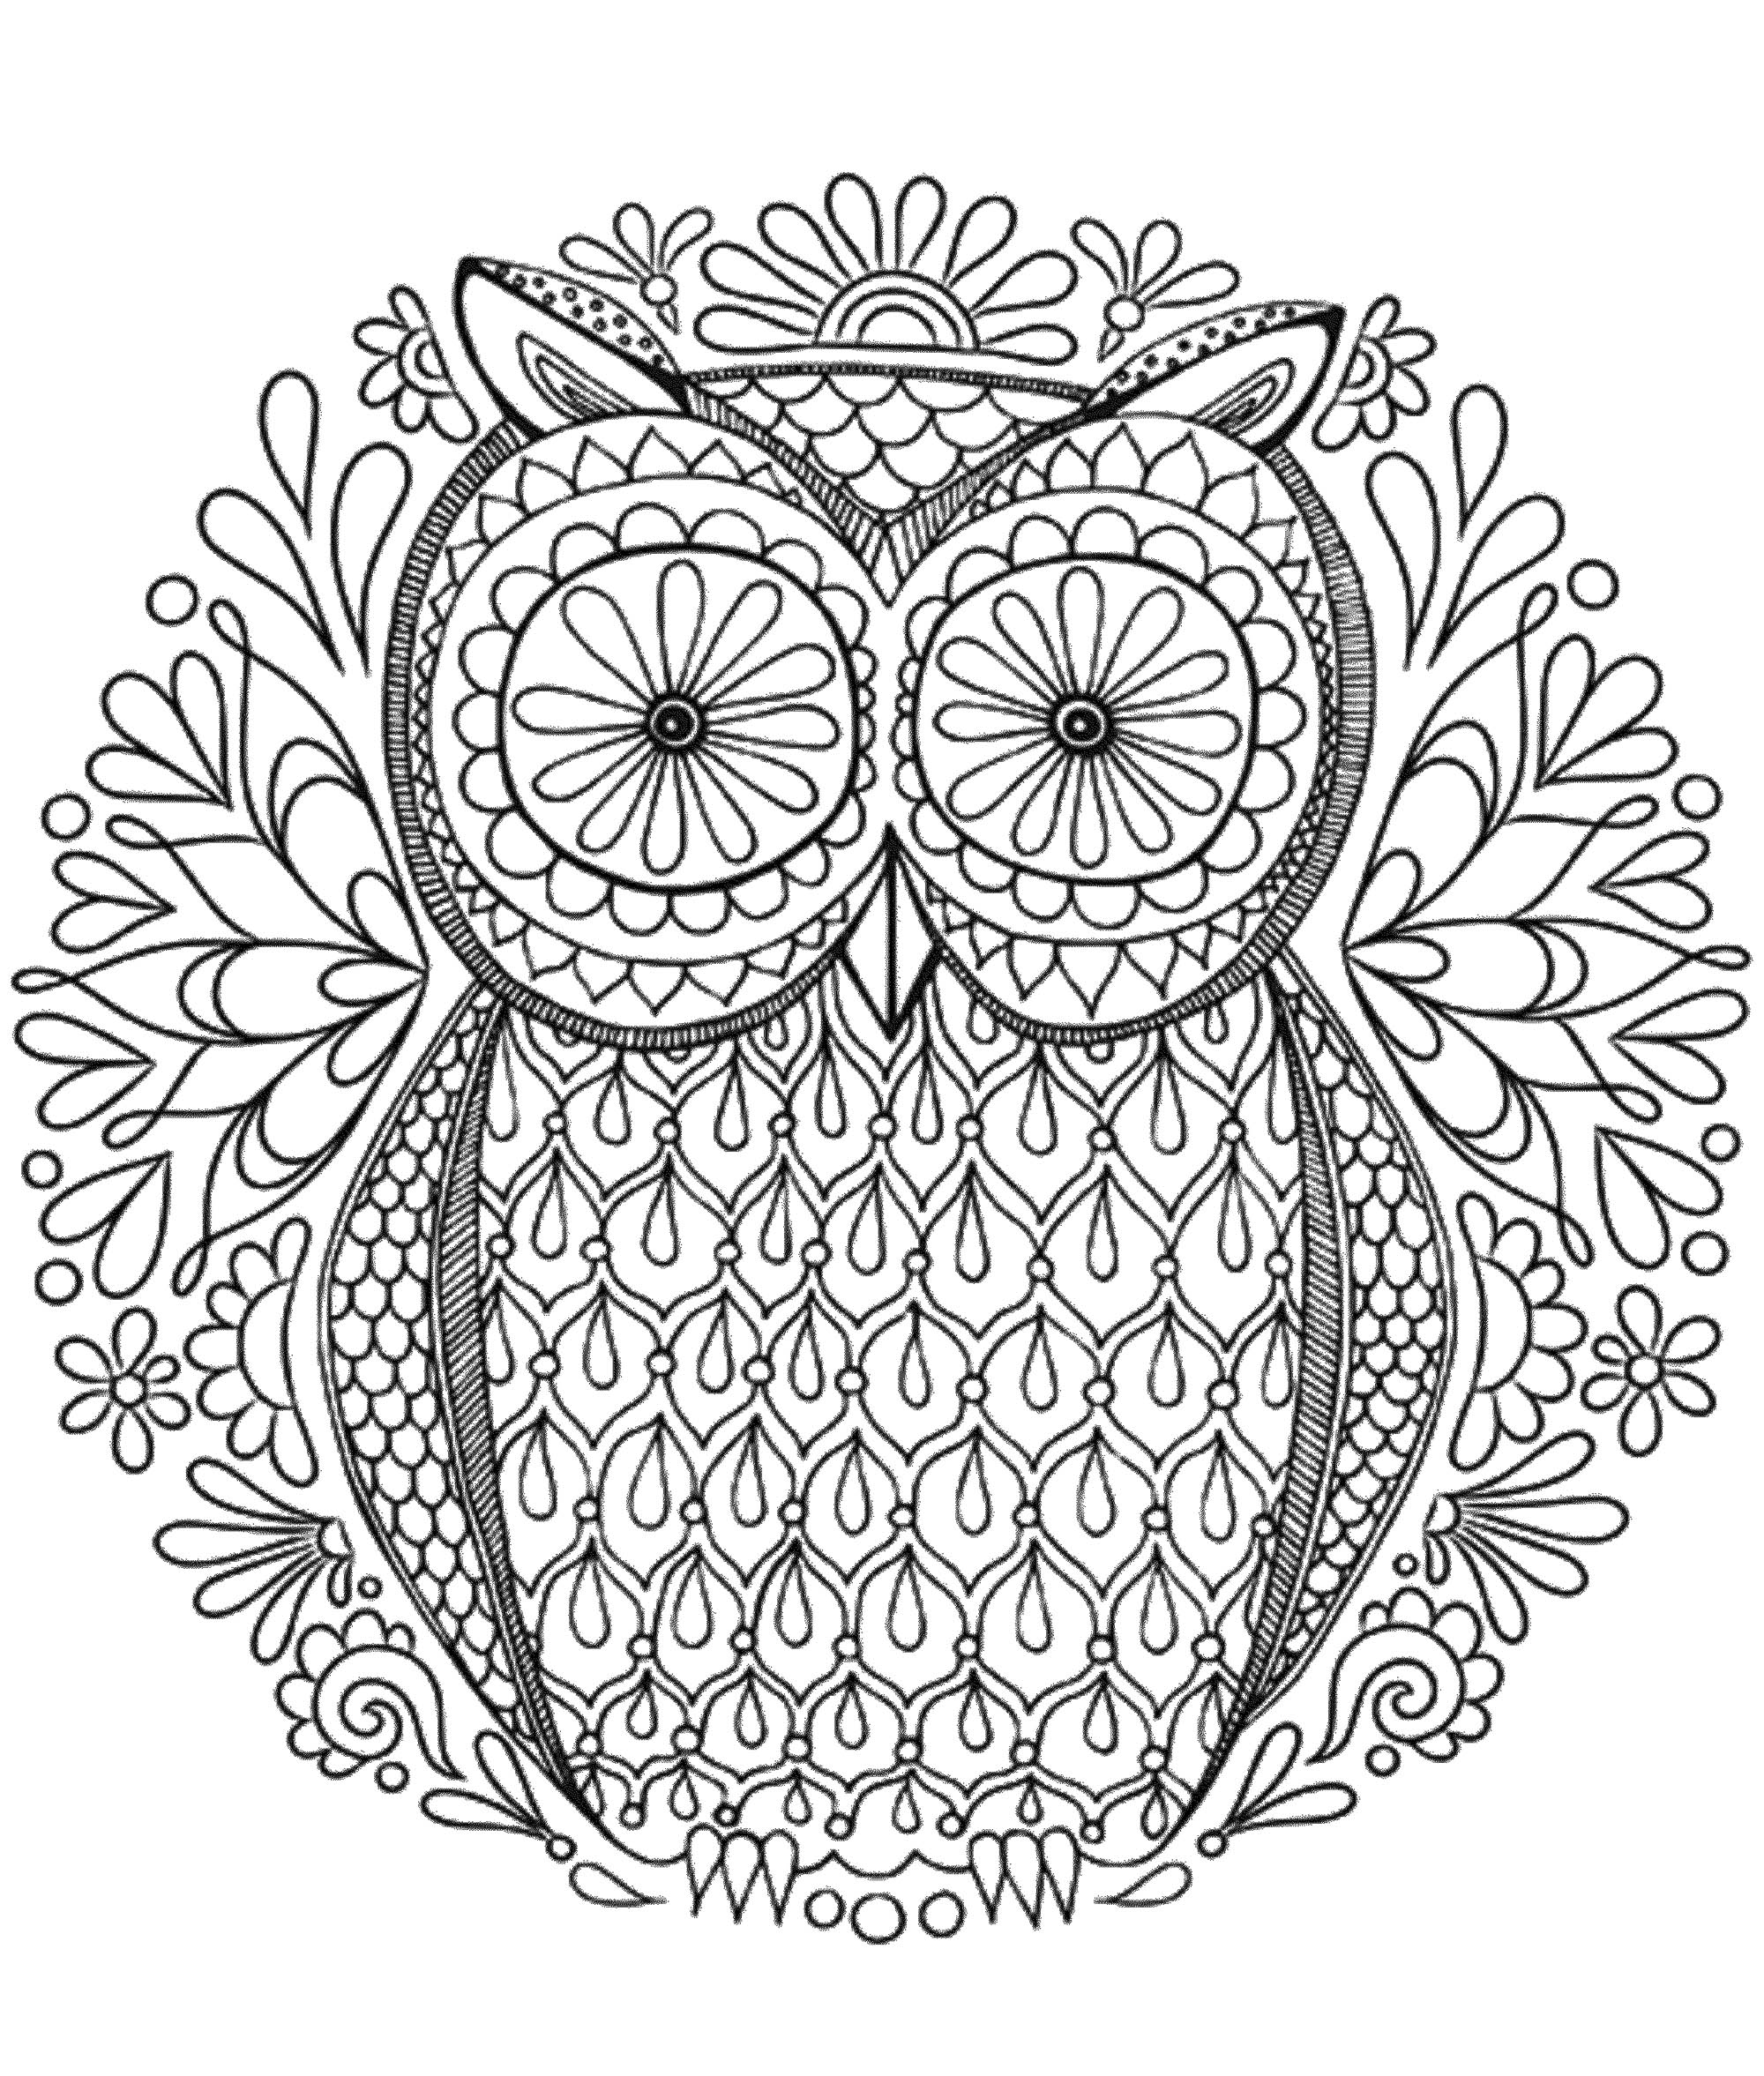 mandala coloring pages for adults free flower mandala coloring pages best coloring pages for kids coloring free mandala for pages adults